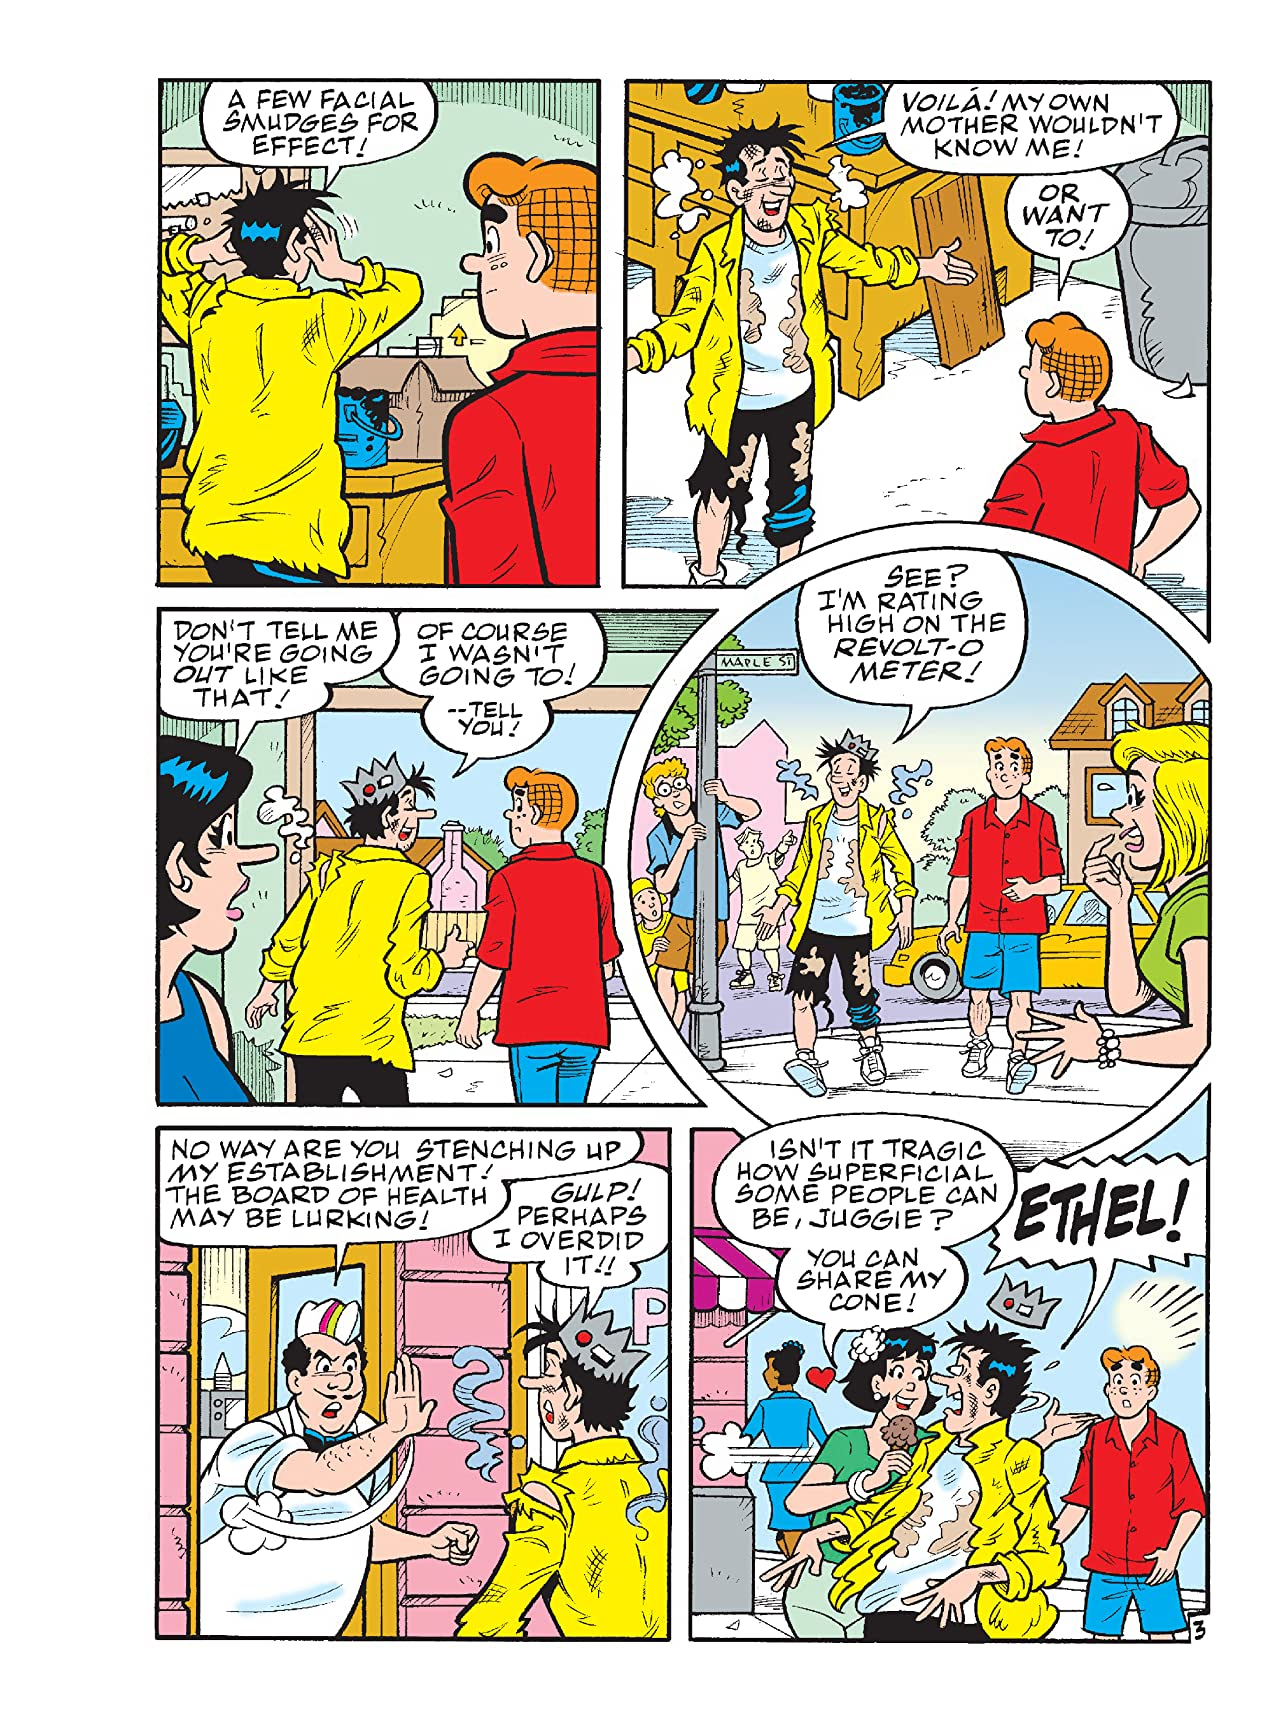 World of Archie Double Digest #101